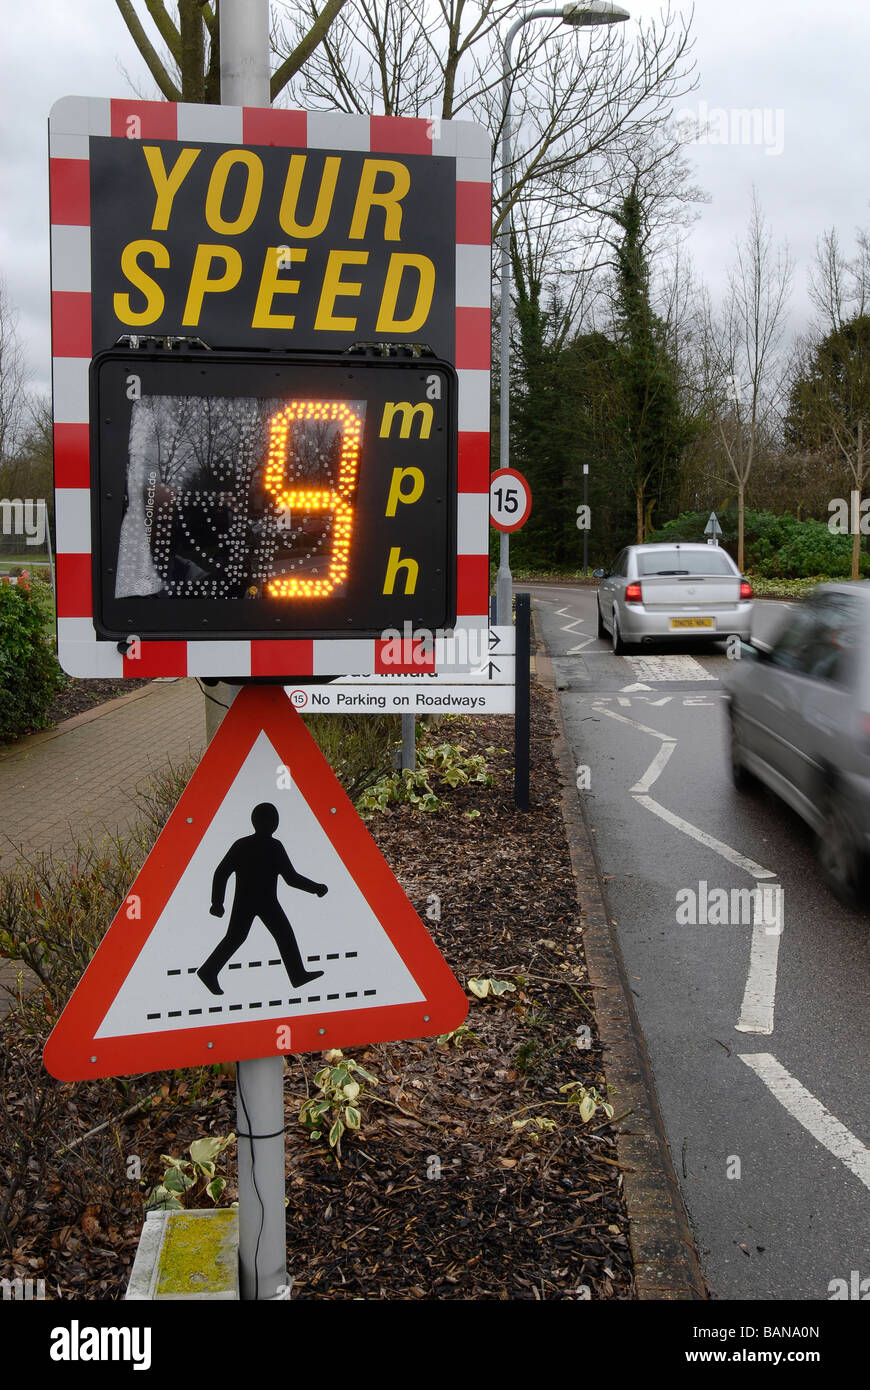 Speed Reduction Warning Sign - Stock Image